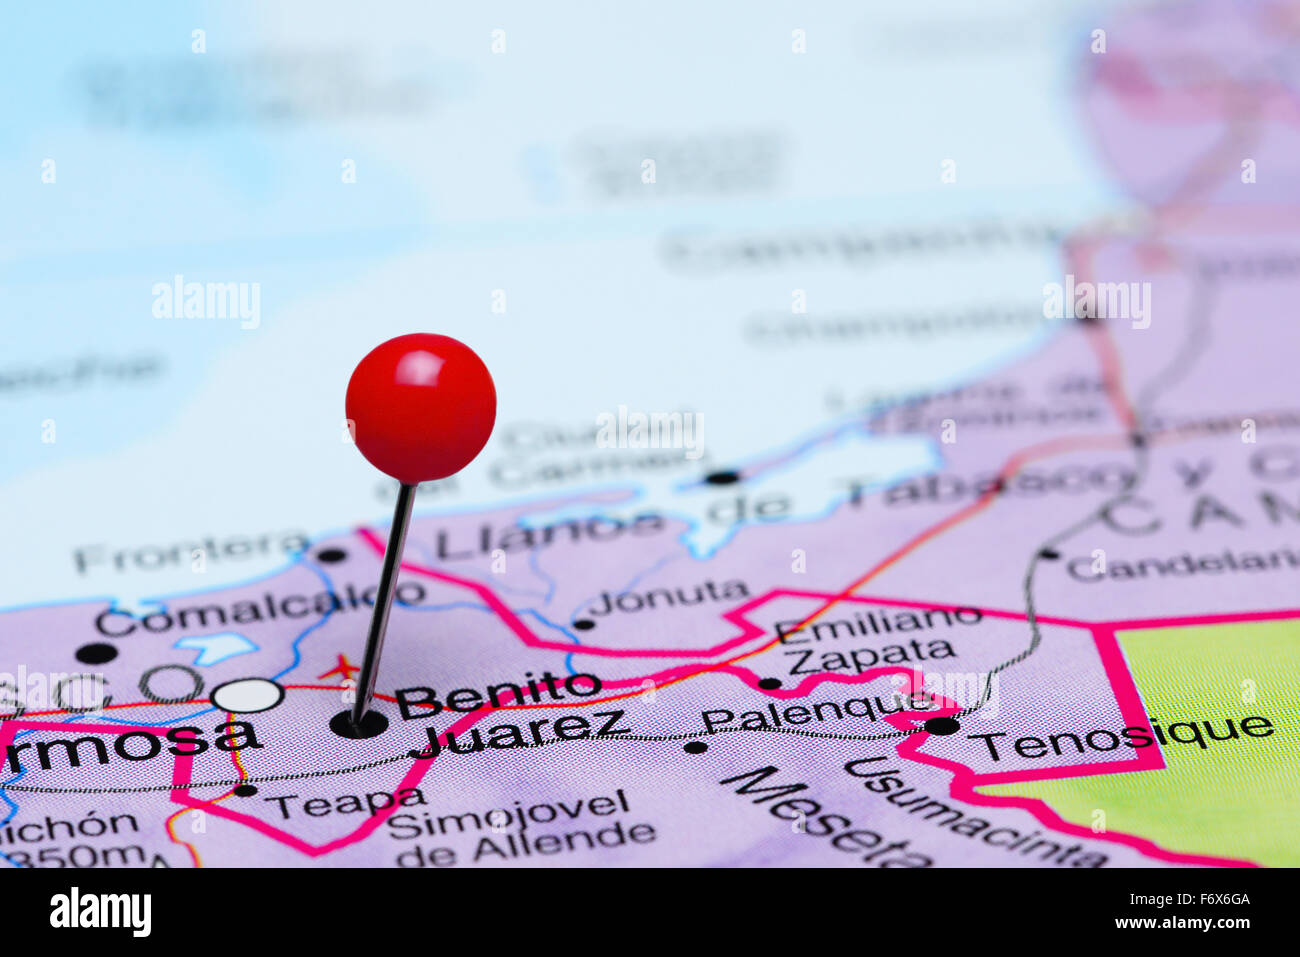 Benito Juarez Mexico Map.Benito Juarez Pinned On A Map Of Mexico Stock Photo 90315690 Alamy